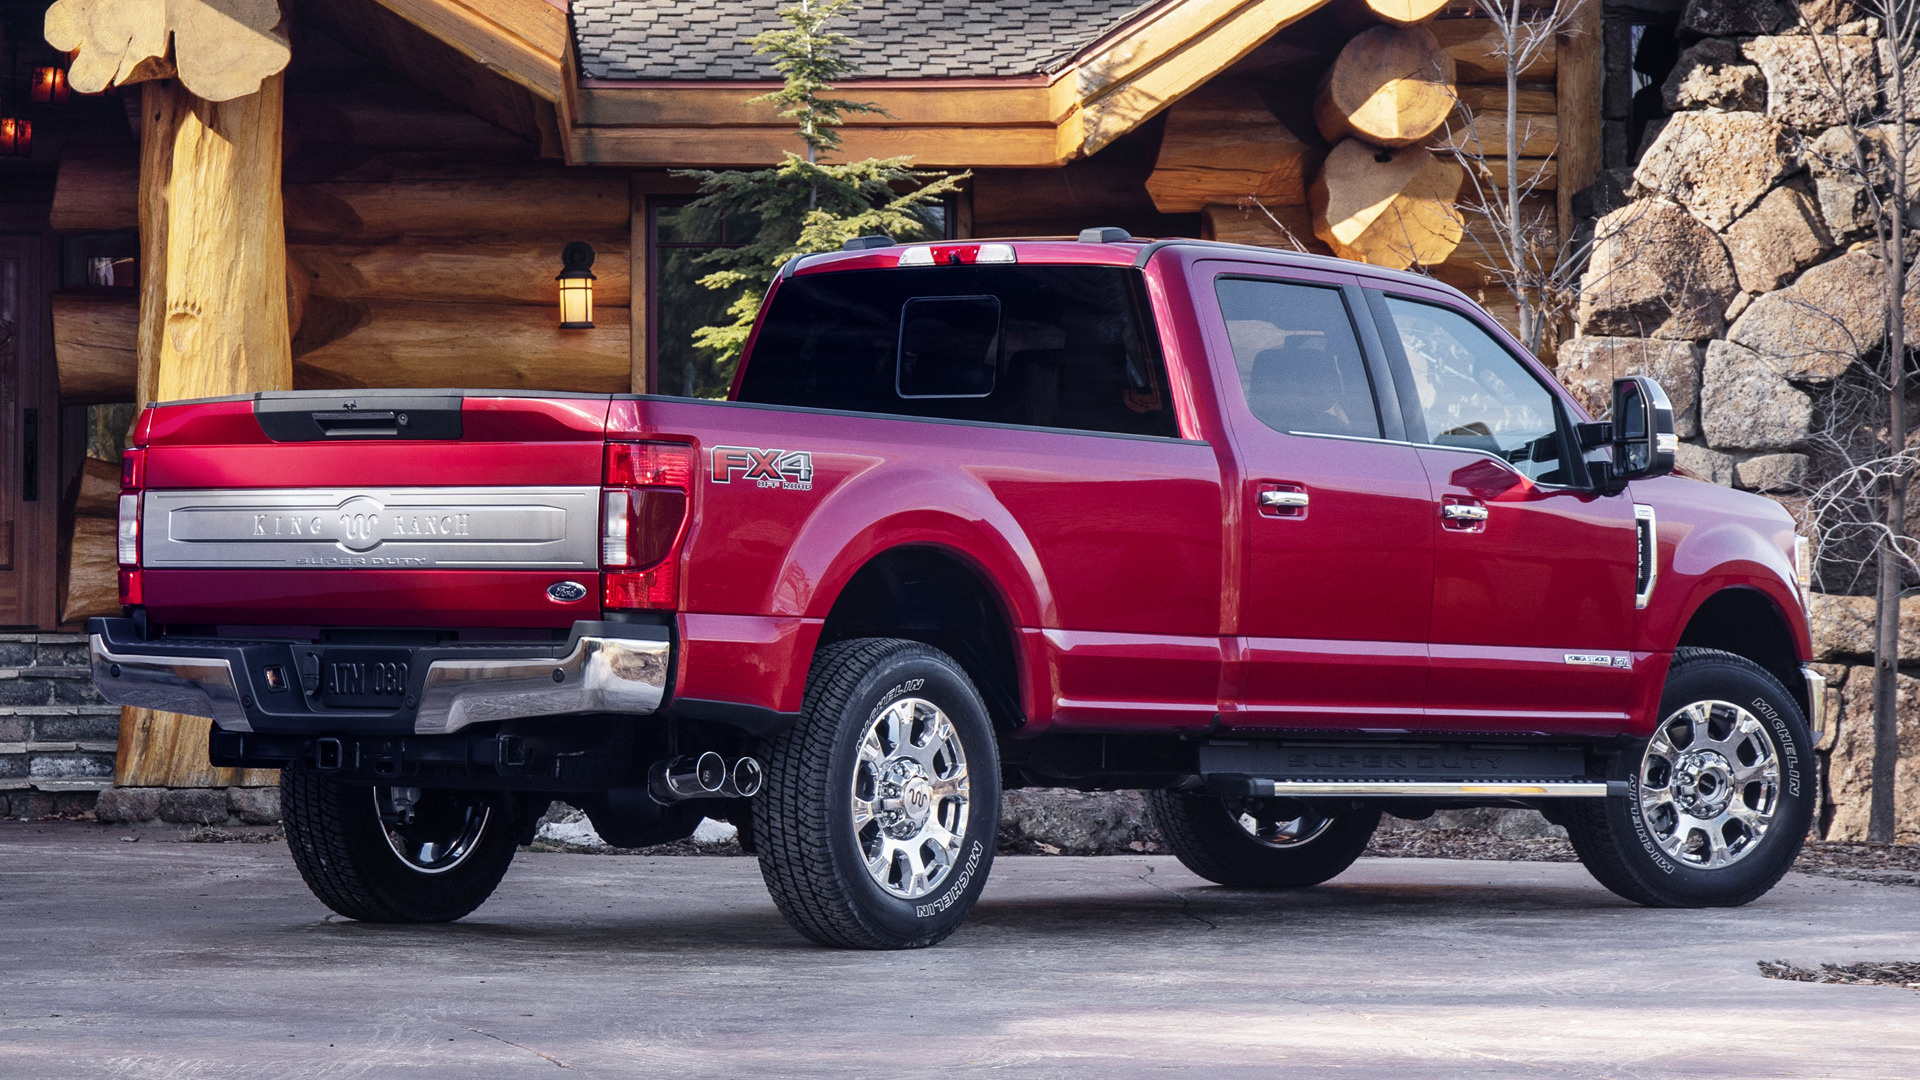 2020 Ford F-250 Super Duty King Ranch Crew Cab FX4 Package [Long] - Wallpapers and HD Images ...